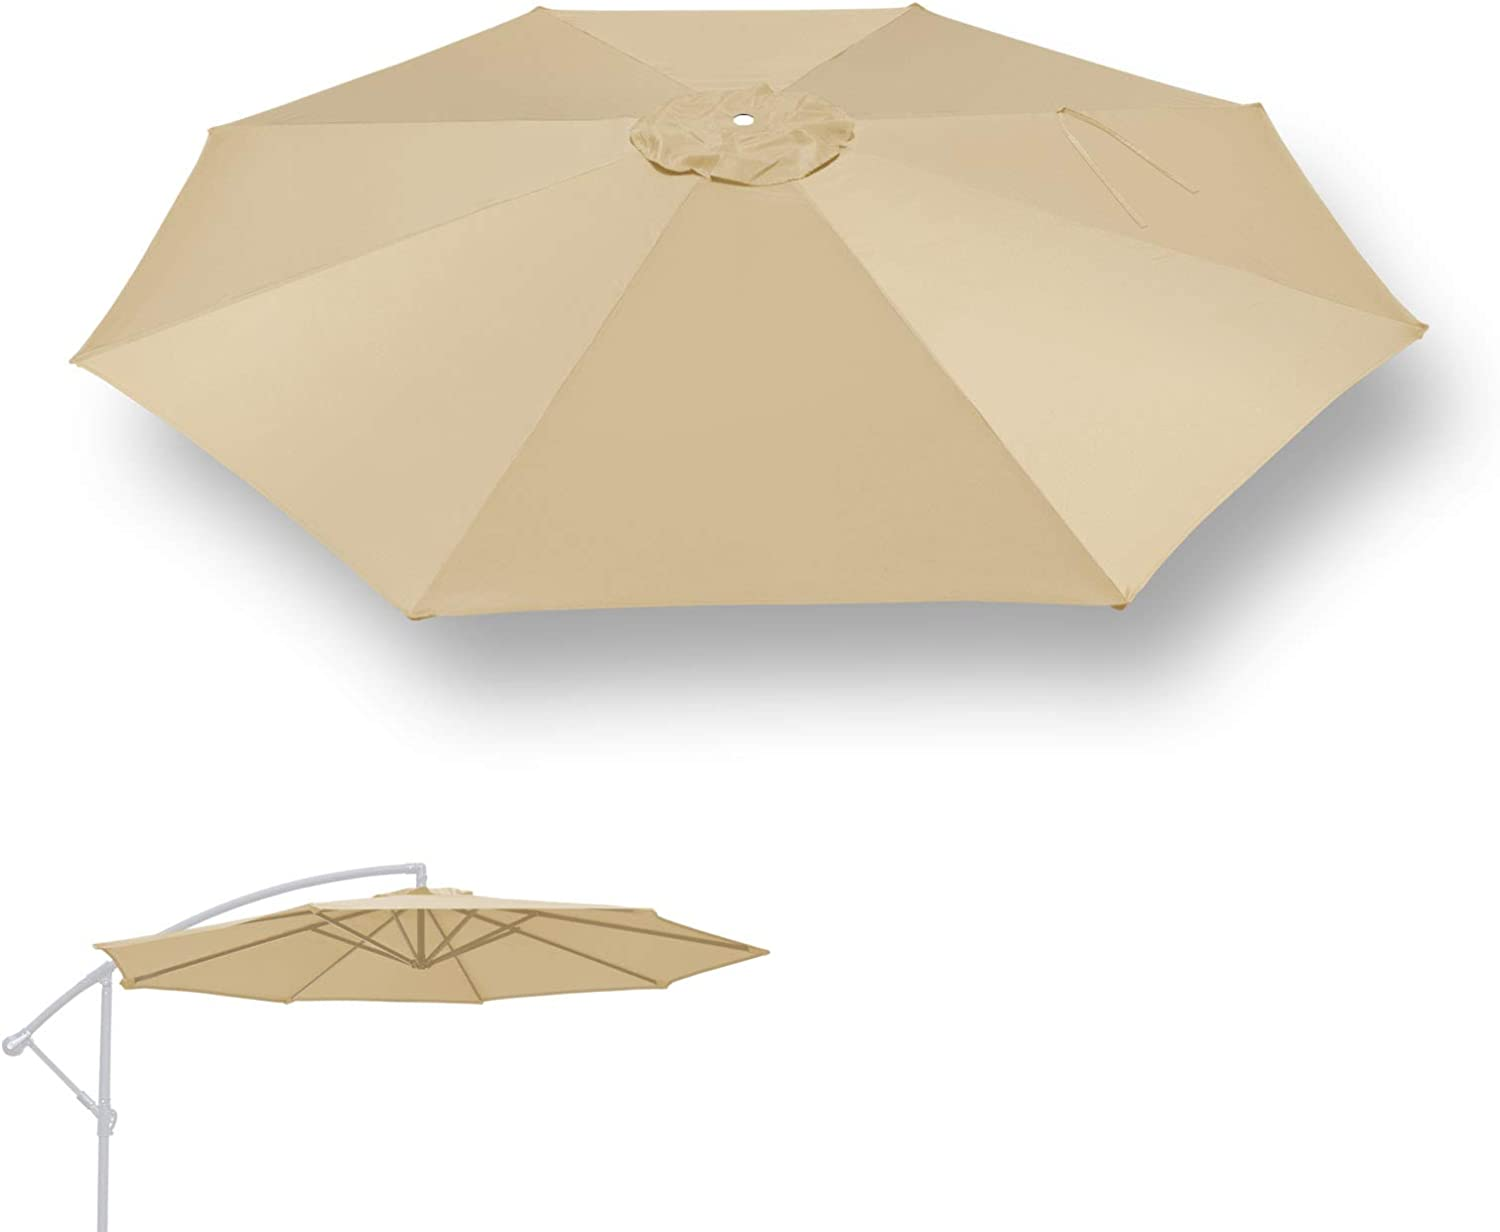 Amazon Com Benefitusa Replacement Umbrella Canopy For 10ft 8 Ribs Cantilever Hanging Umbrella Canopy Only Beige Garden Outdoor